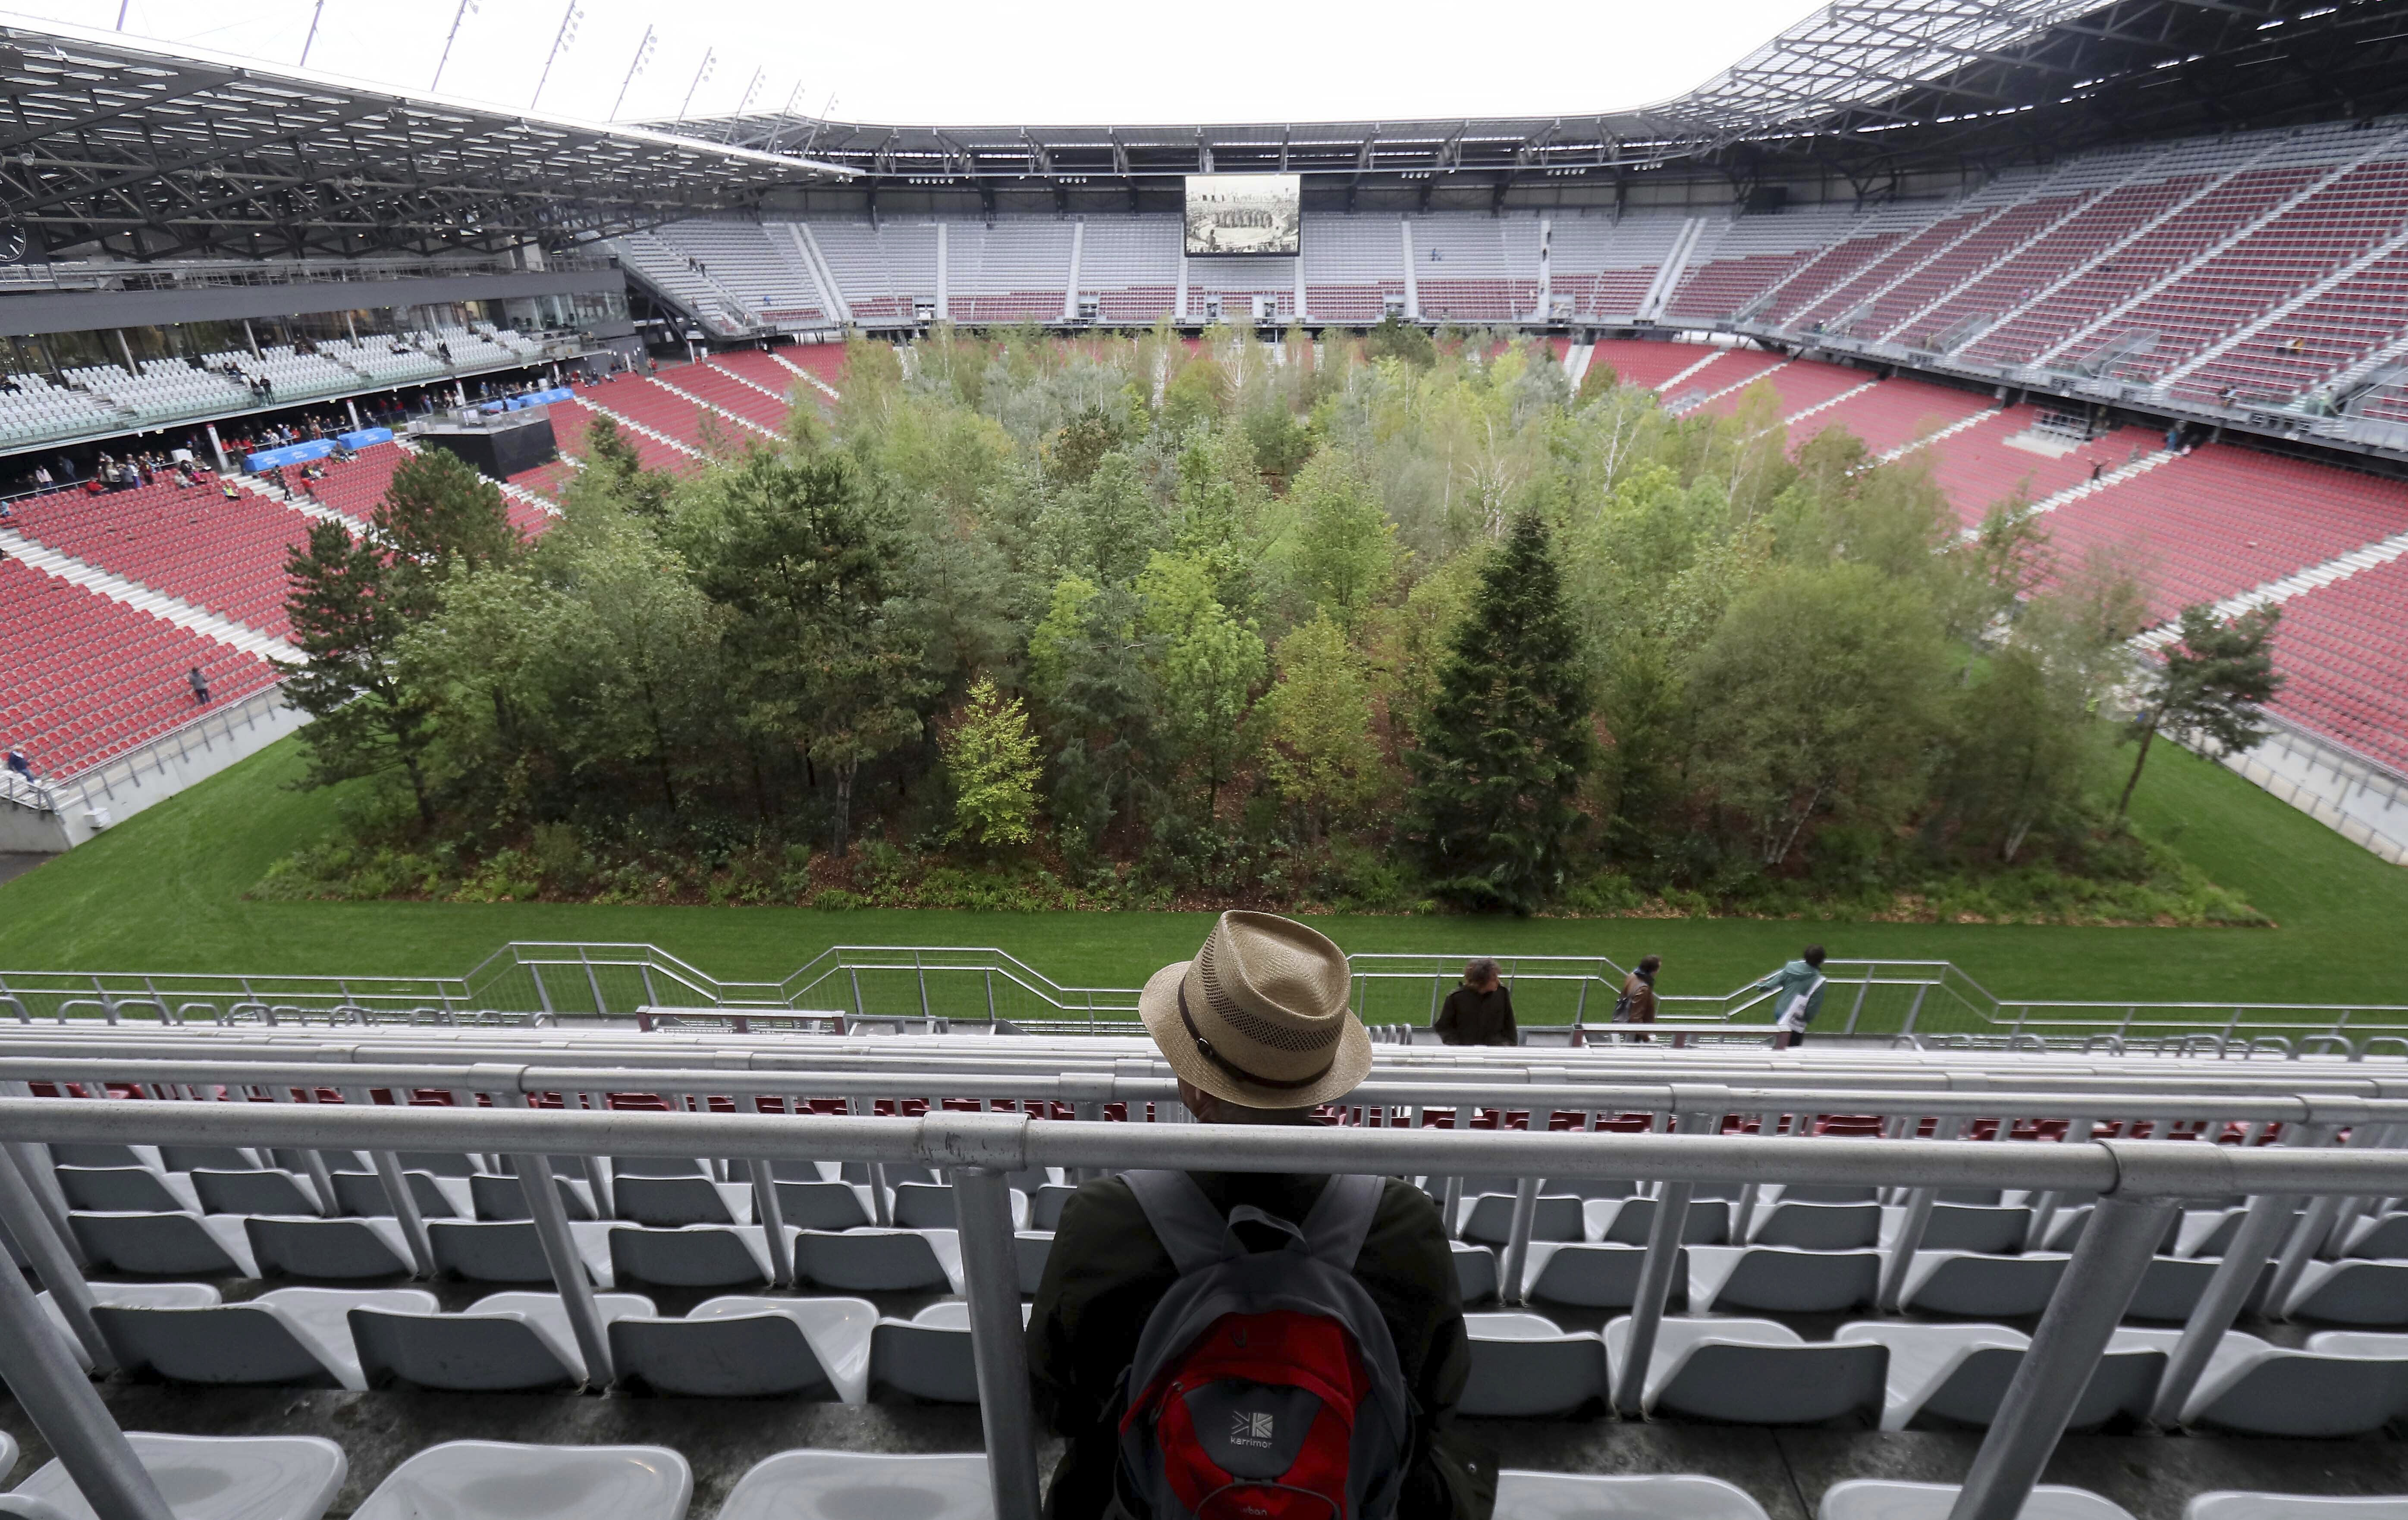 Soccer stadium turned into 'forest' as artist highlights climate change